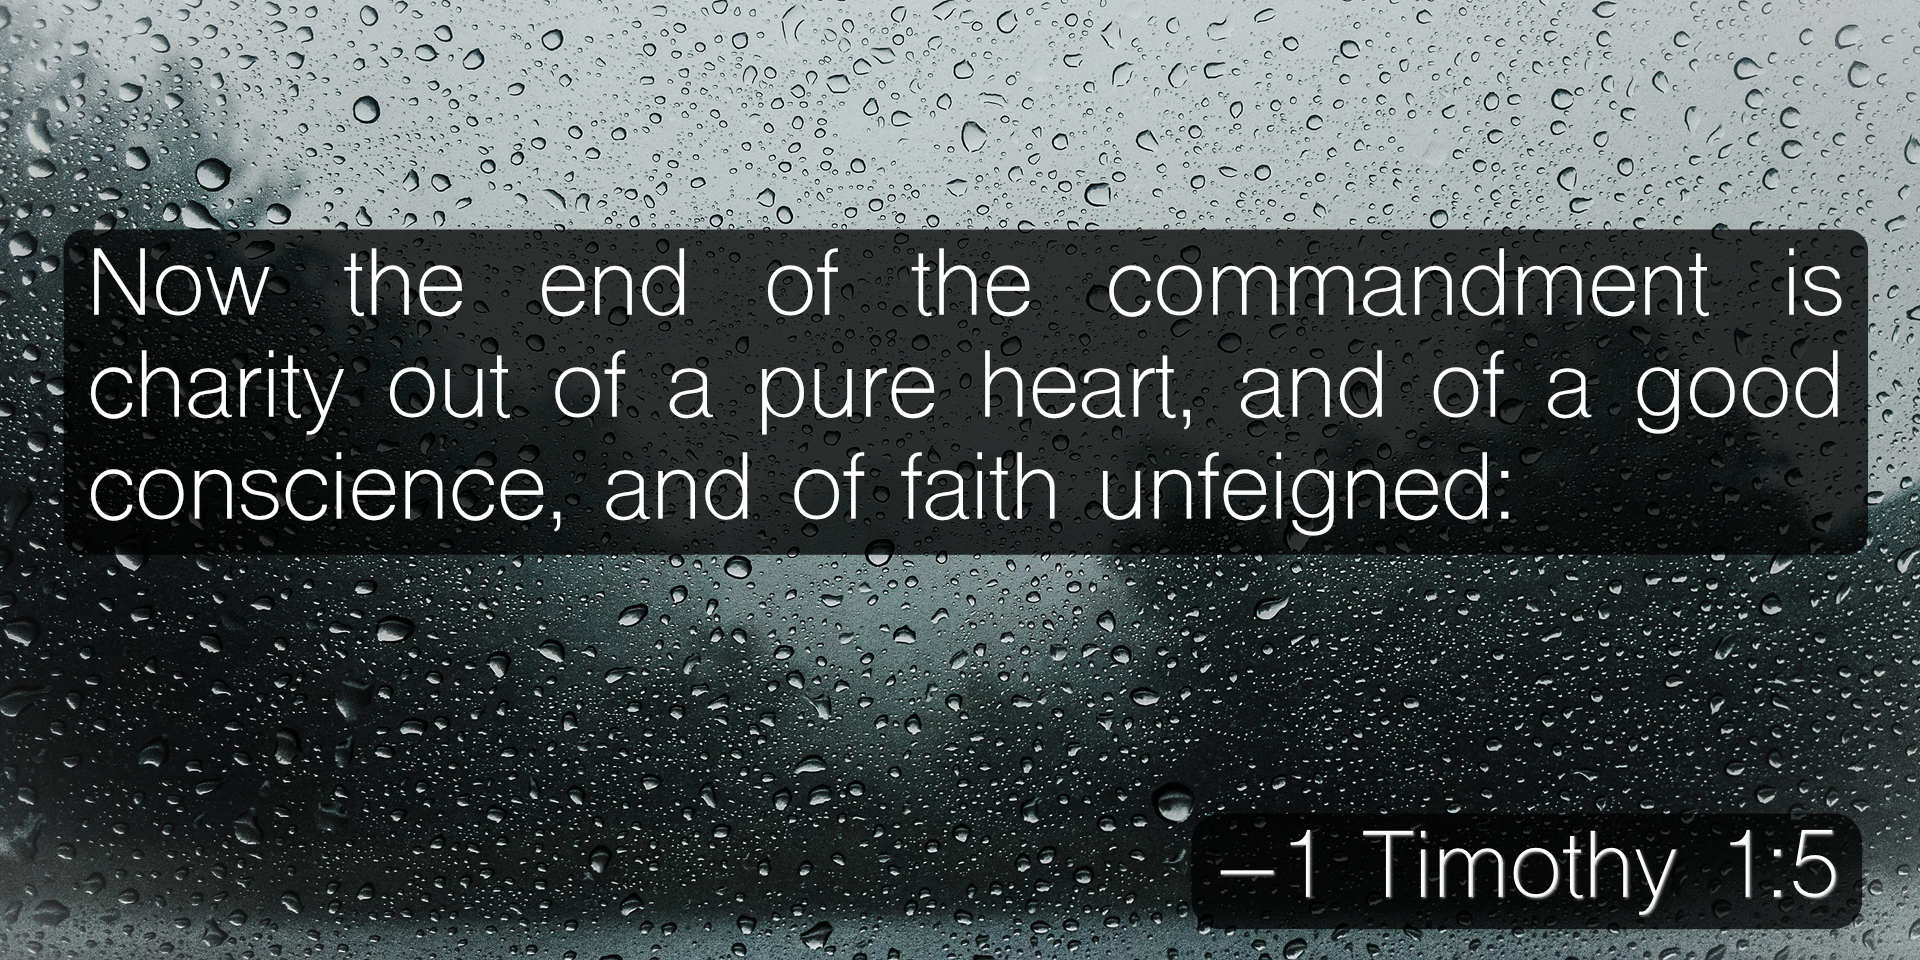 Now the end of the commandment is charity out of a pure heart, and of a good conscience, and of faith unfeigned: –1 Timothy 1:5